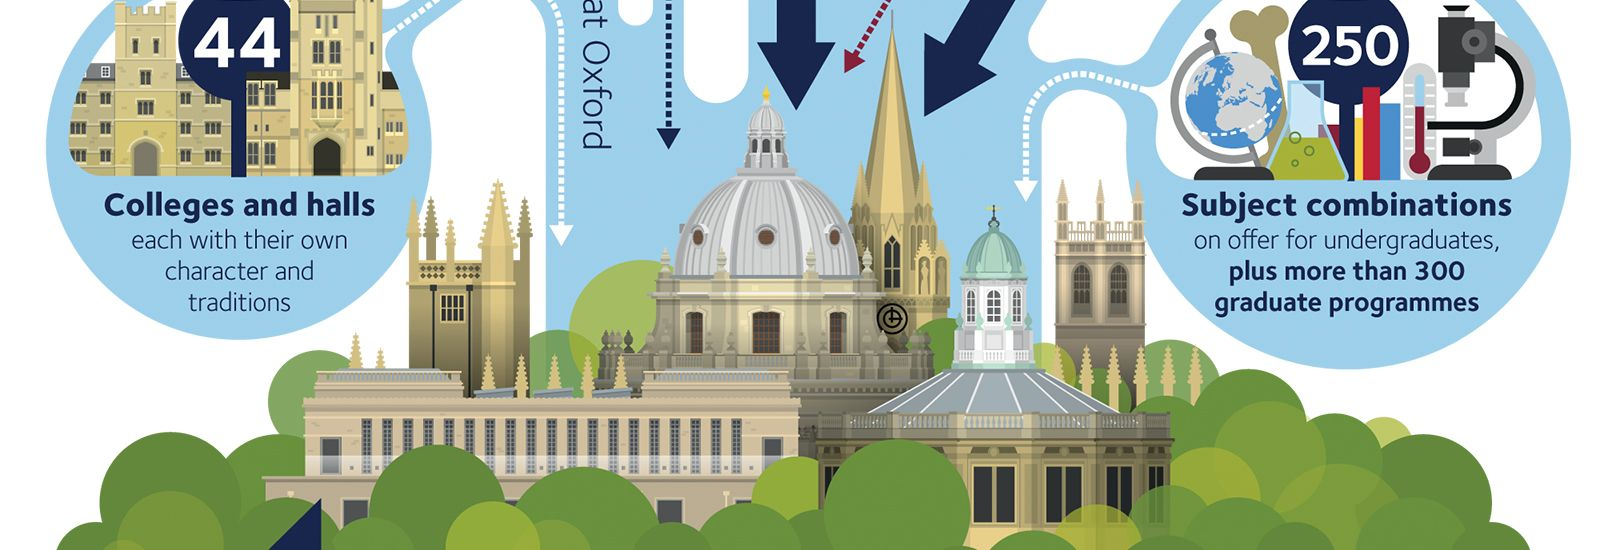 Graphic of Oxford skyline